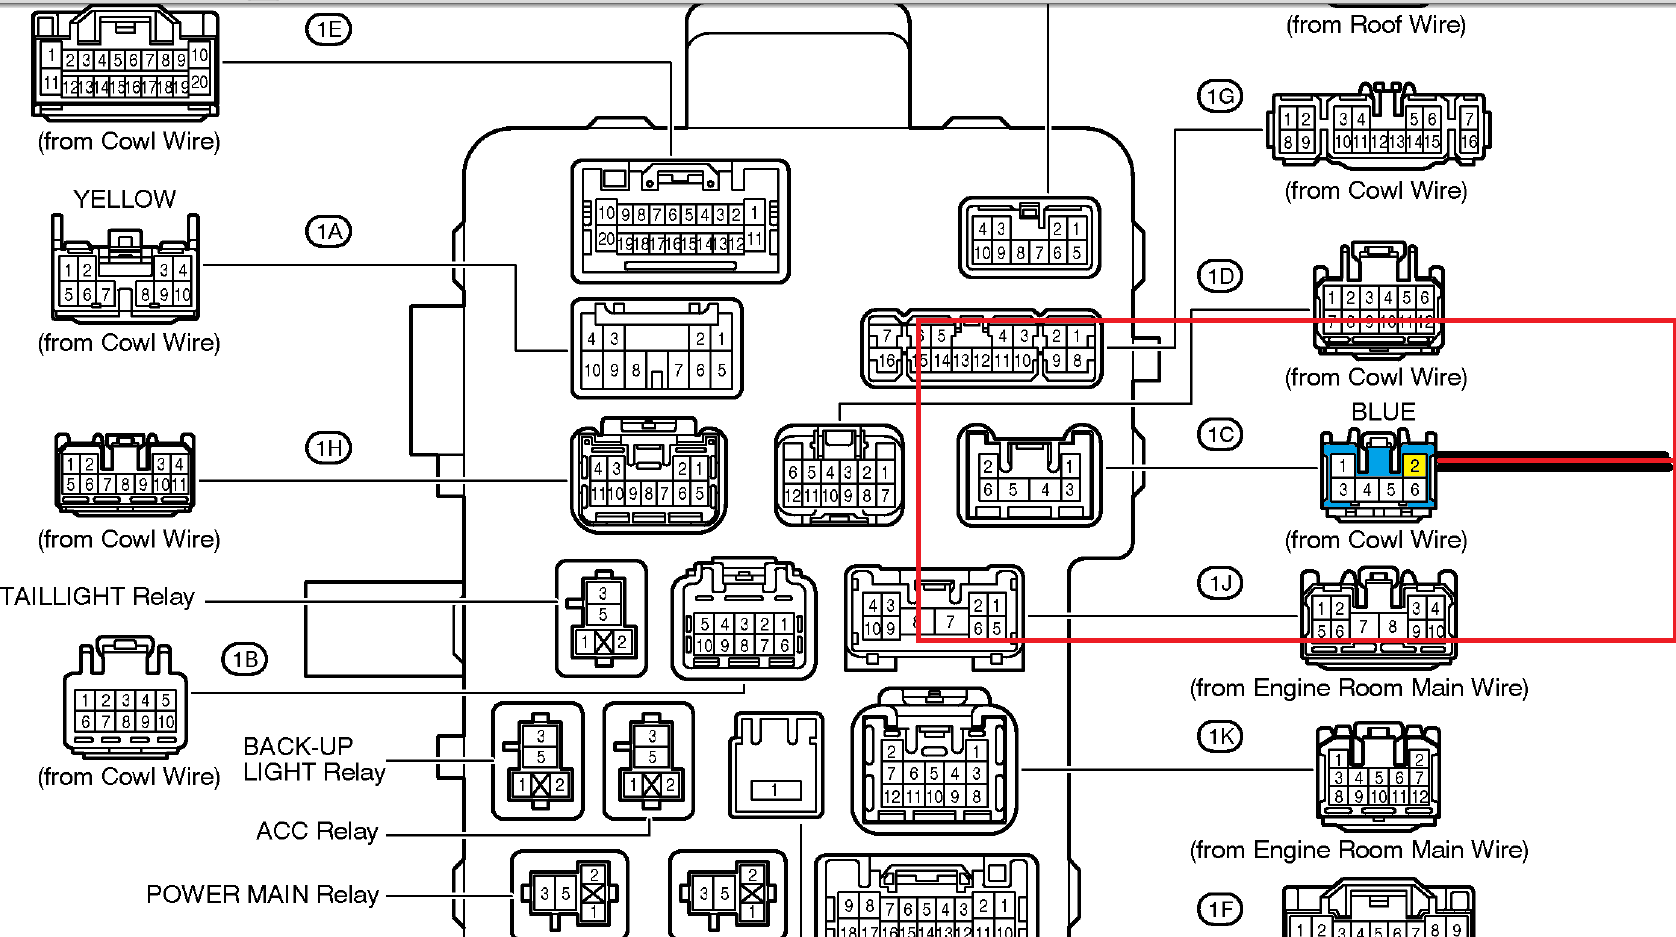 2001 Toyotum Sienna Fuse Box Diagram